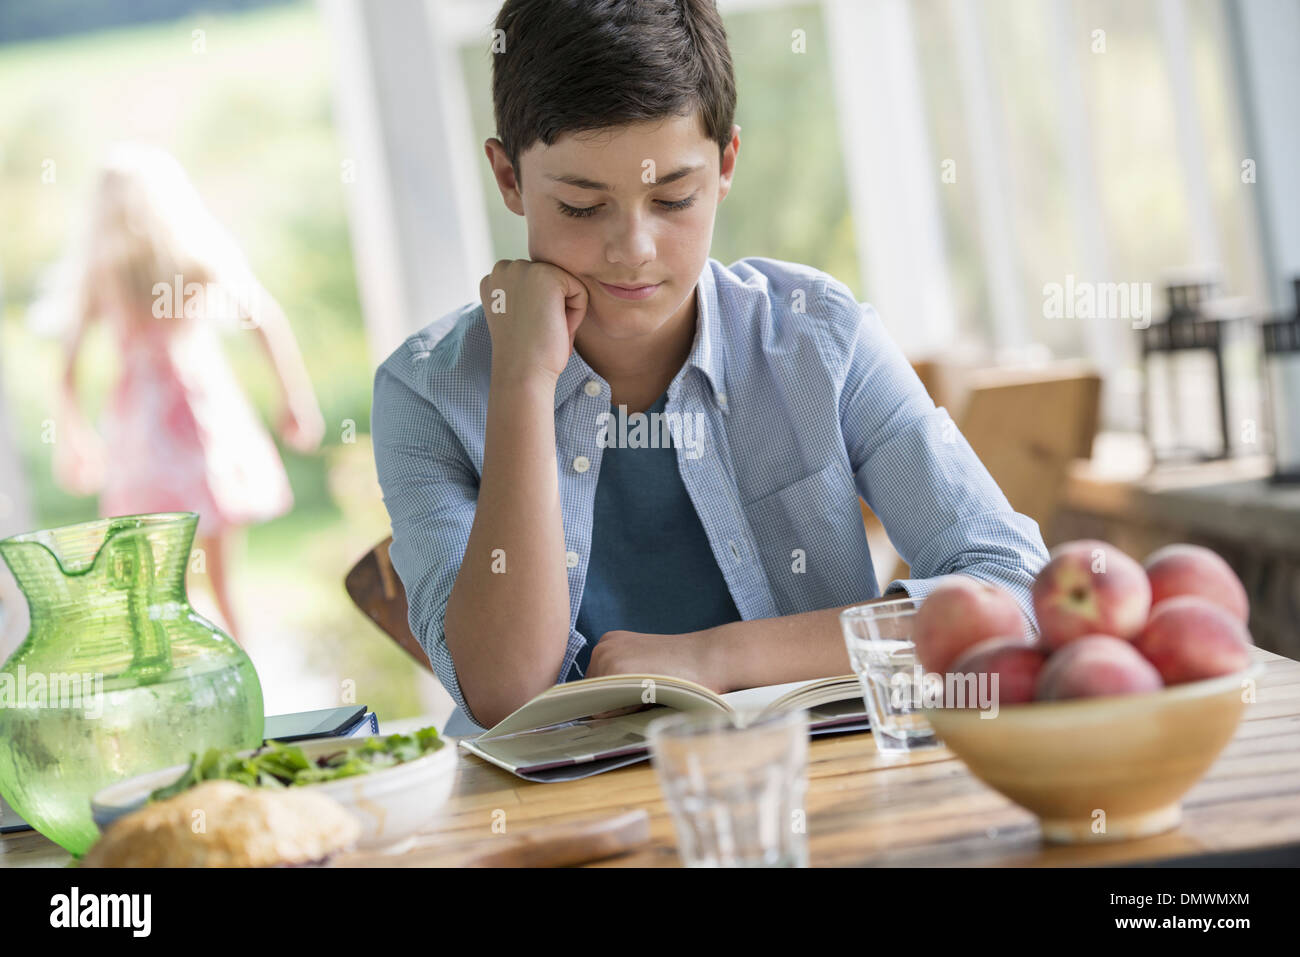 A young boy sitting reading a book. - Stock Image